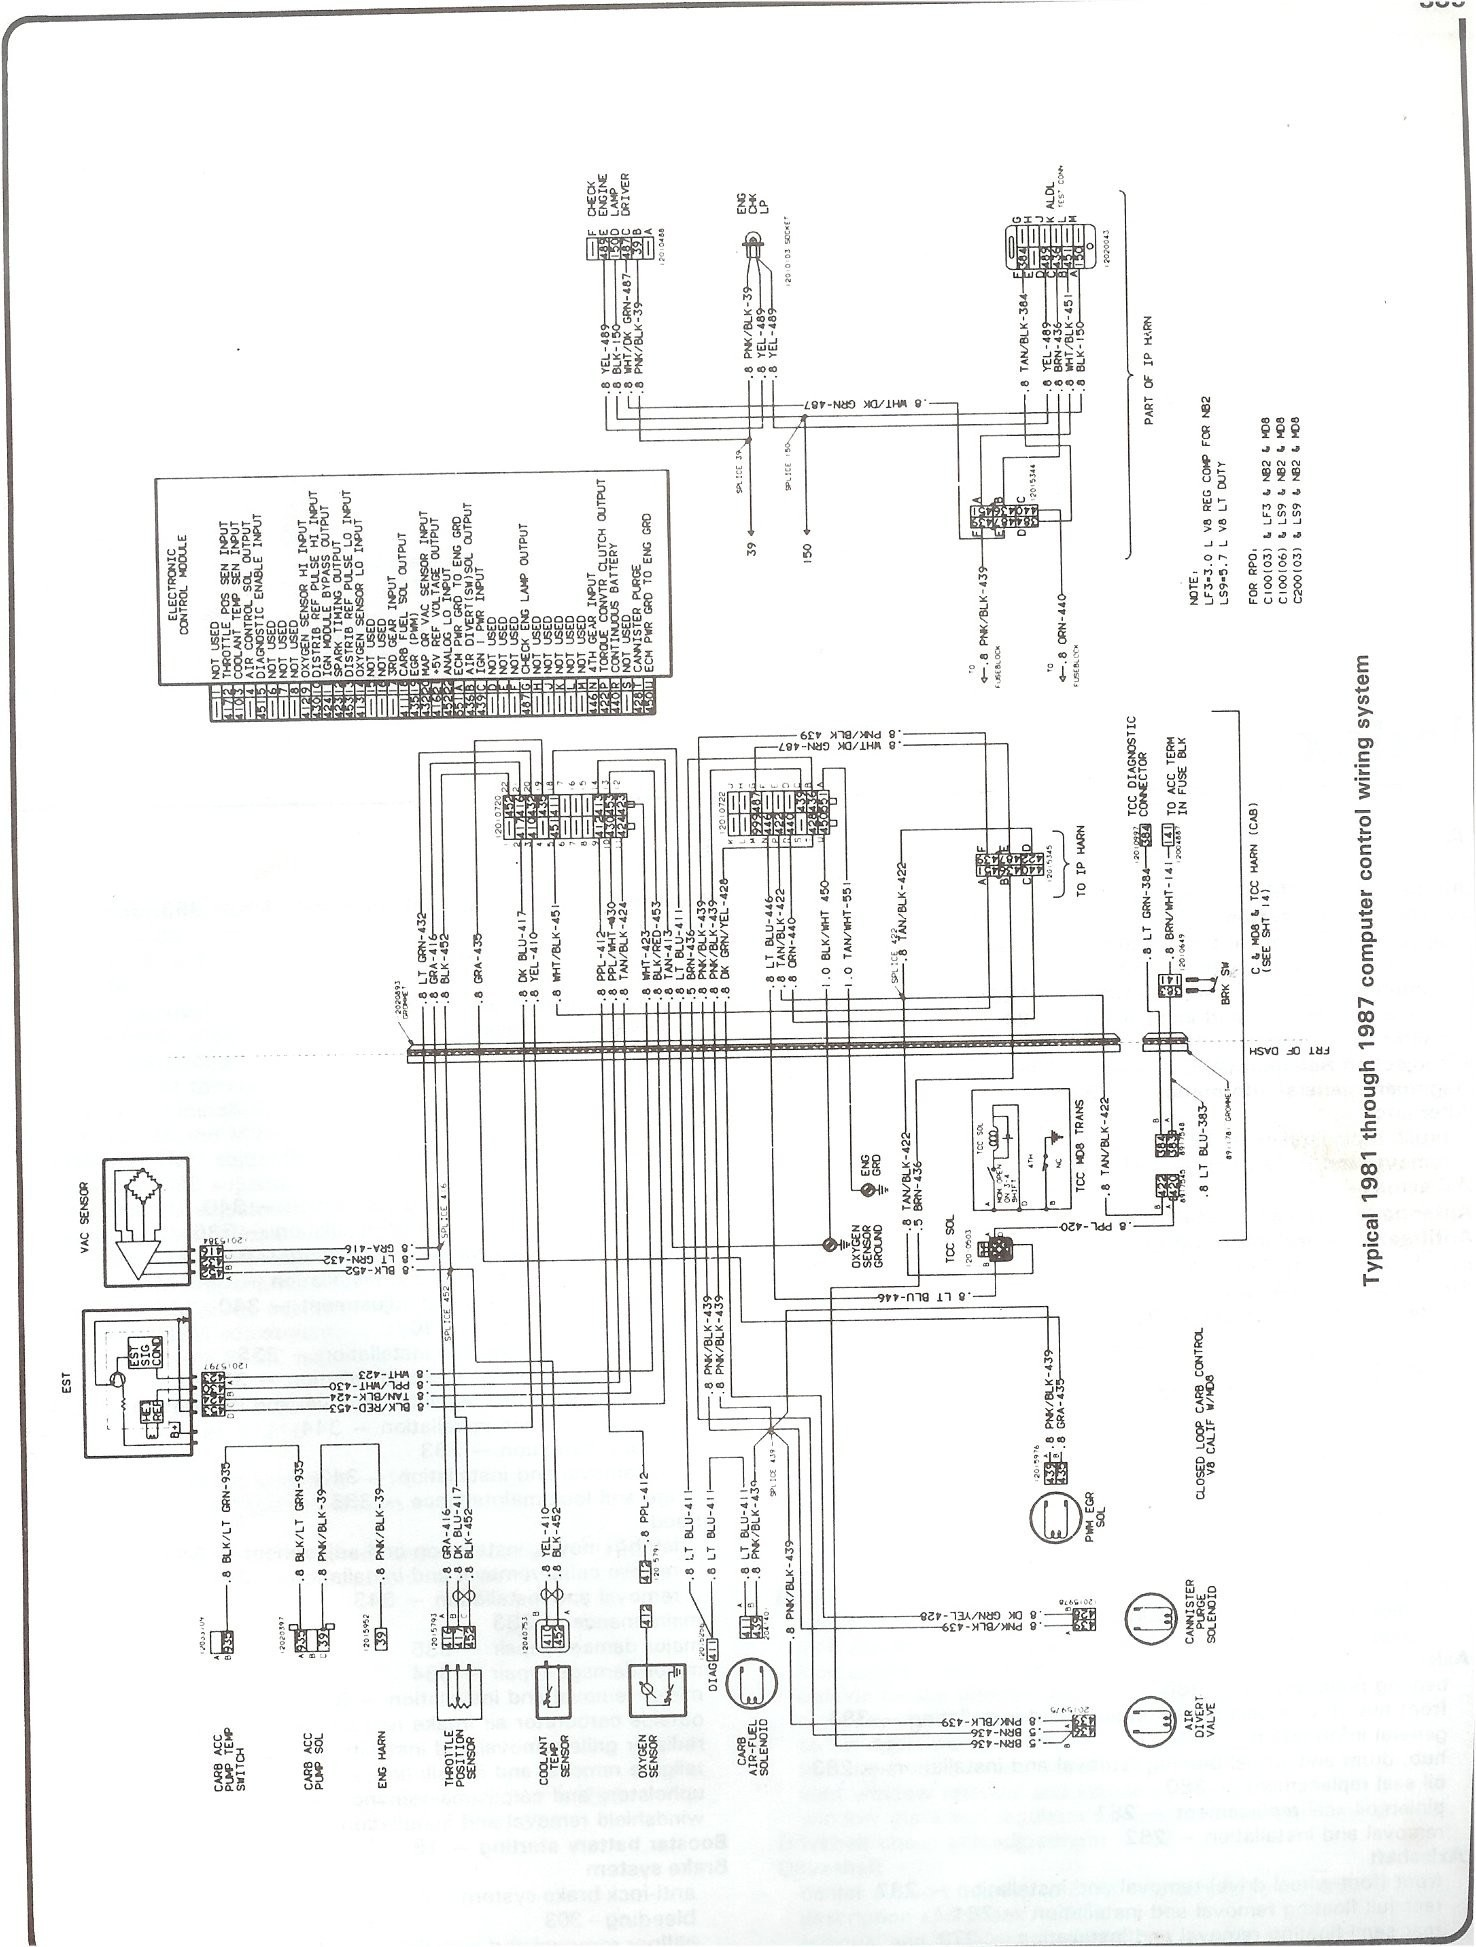 2003 Chevy Impala Engine Diagram B4cdc 73 Gmc Wiring Harness Of 2003 Chevy Impala Engine Diagram